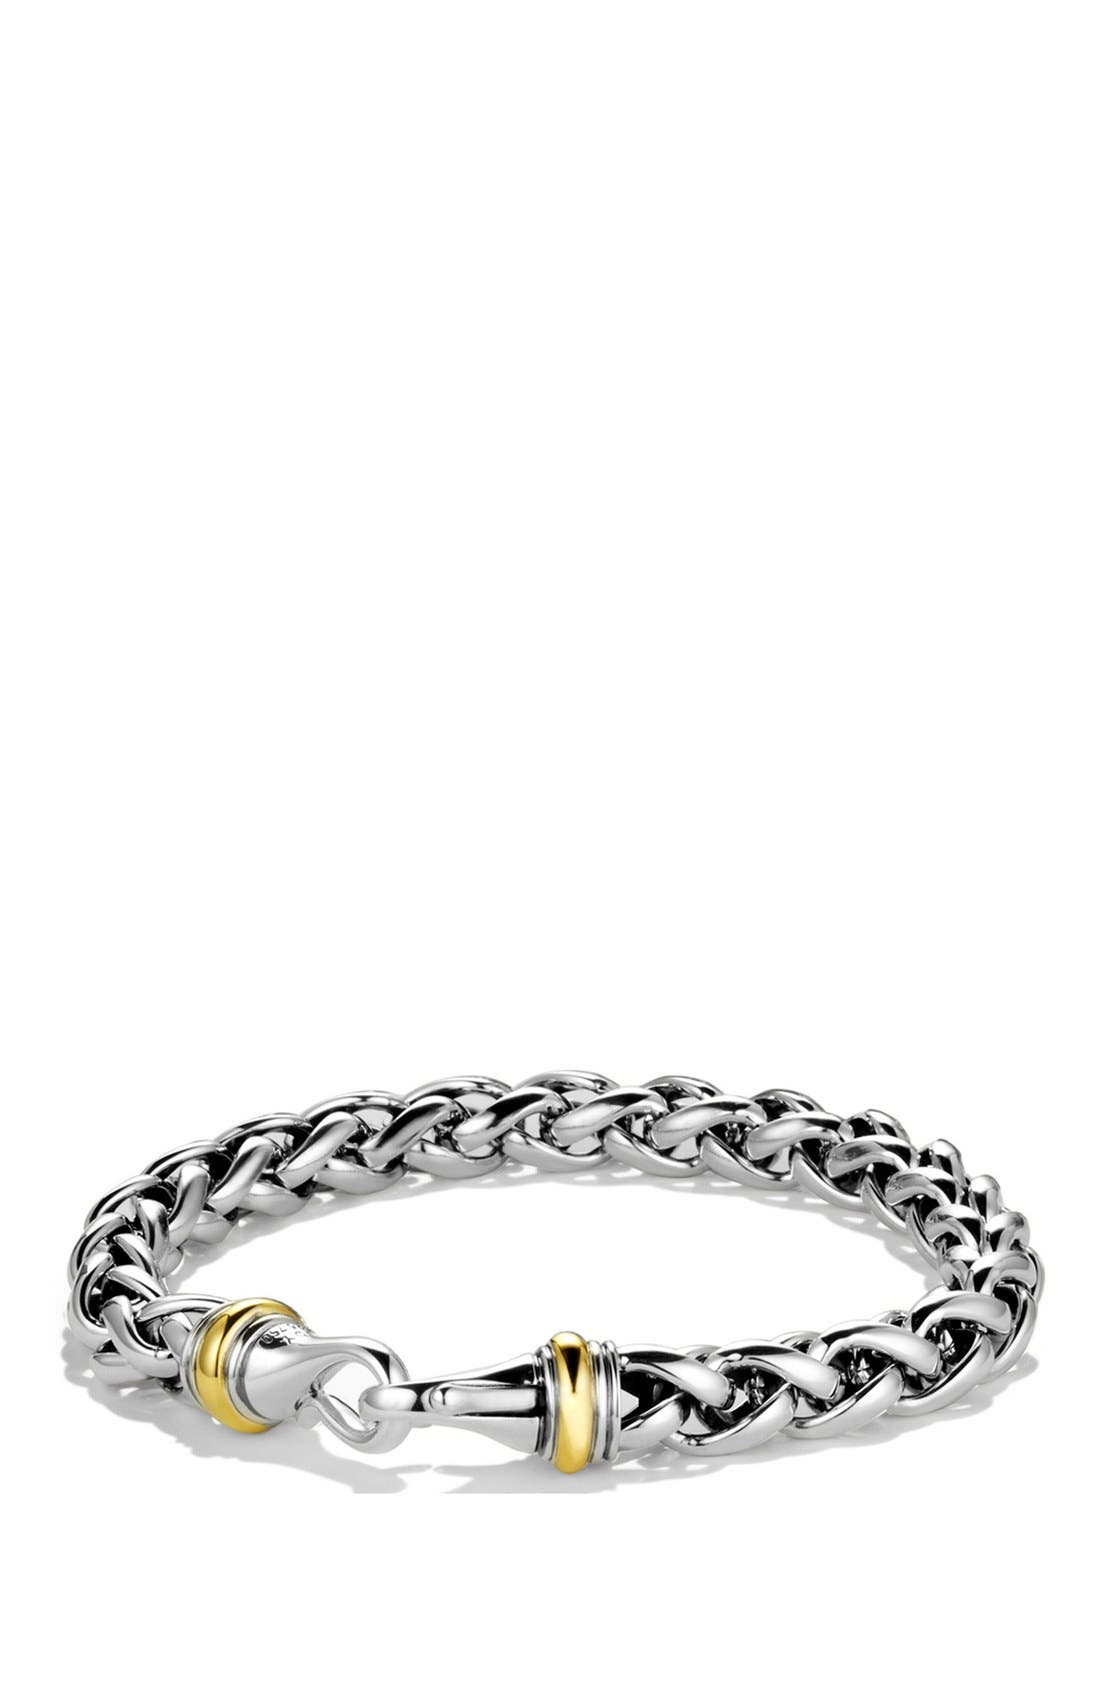 Alternate Image 1 Selected - David Yurman 'Chain' Large Wheat Chain Bracelet with Gold